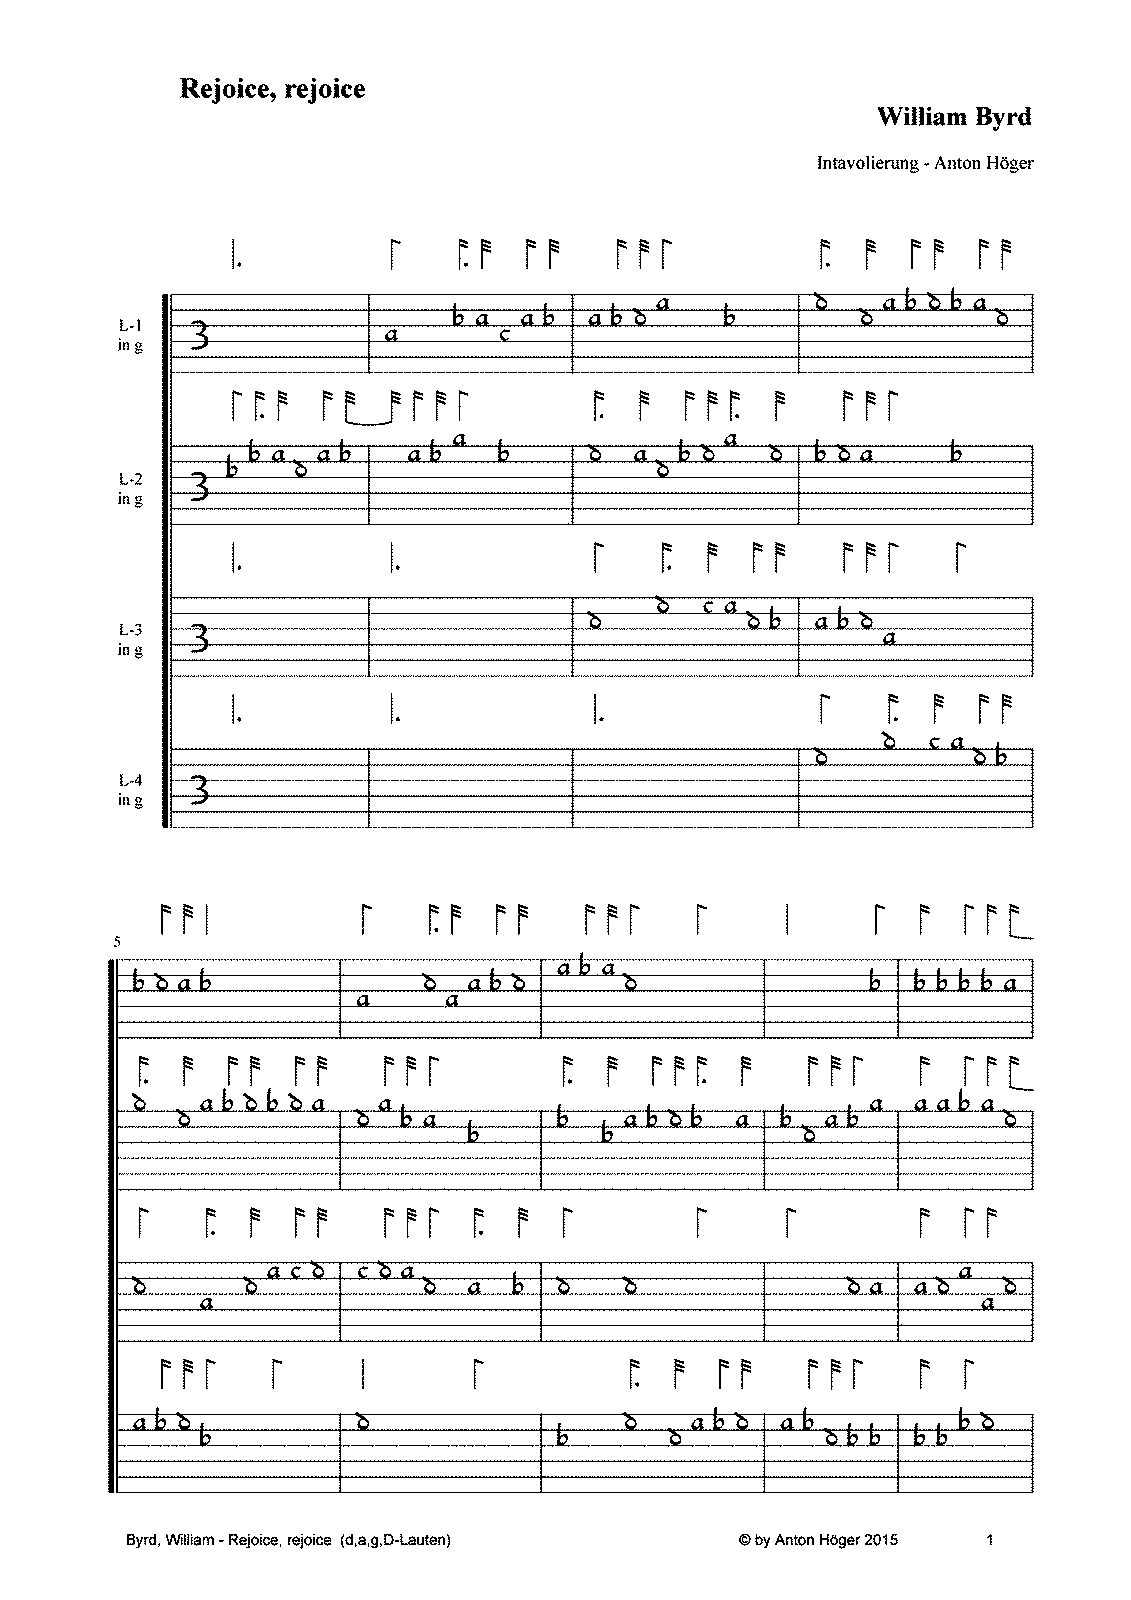 PMLP396391-Byrd, William - Rejoice, rejoice (Fin.Tab).pdf